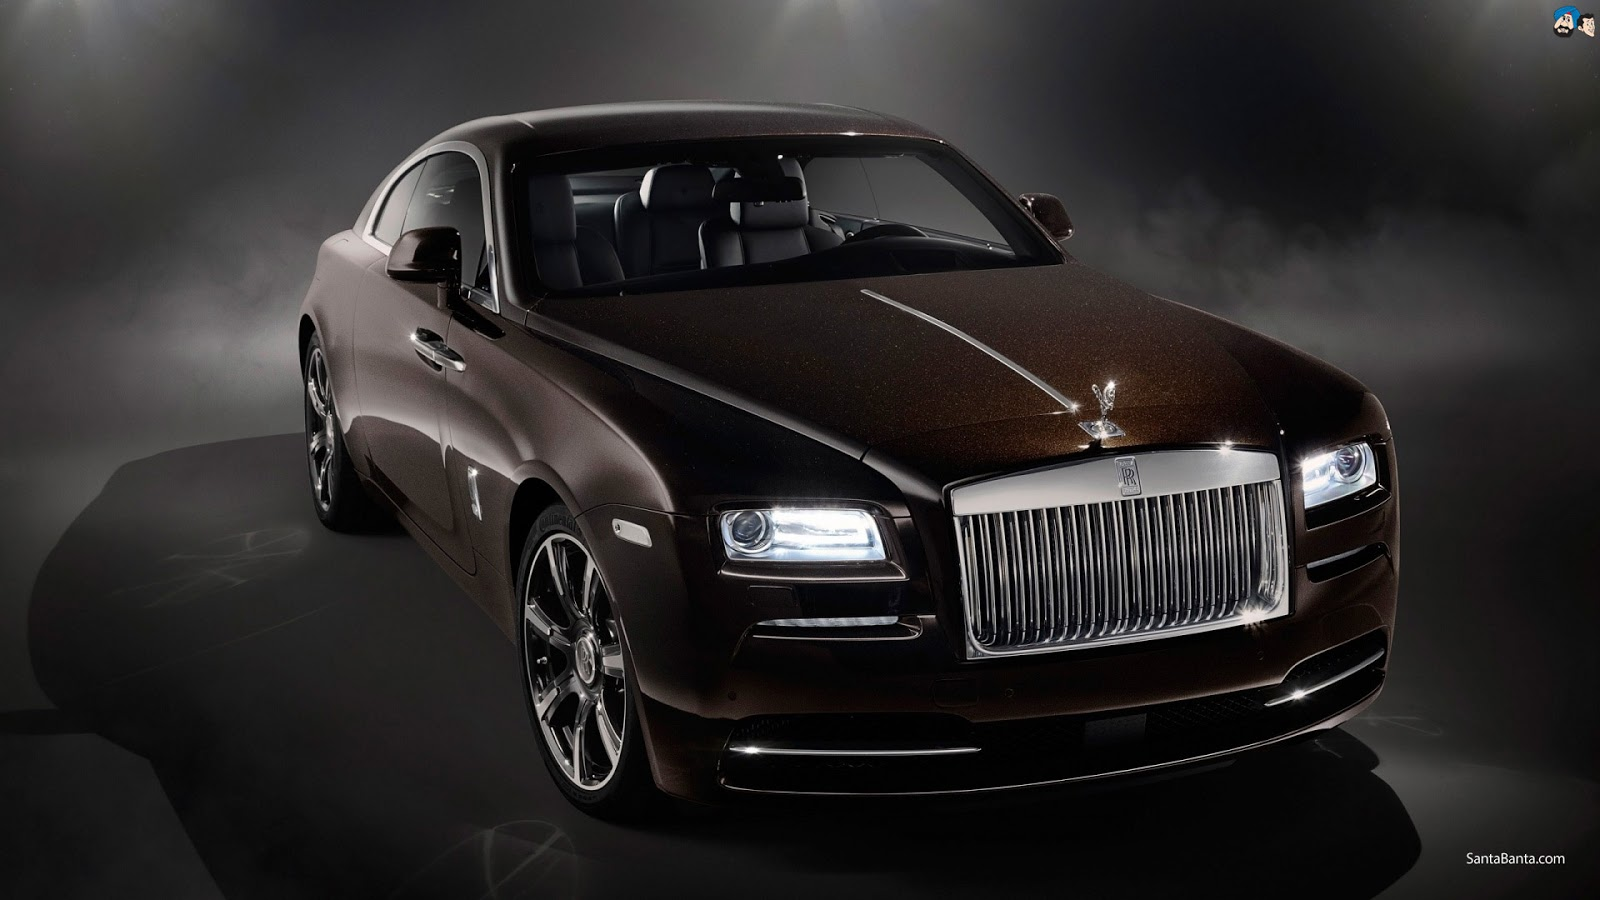 Rolls royce wallpapers most beautiful places in the - Rolls royce wallpaper download ...